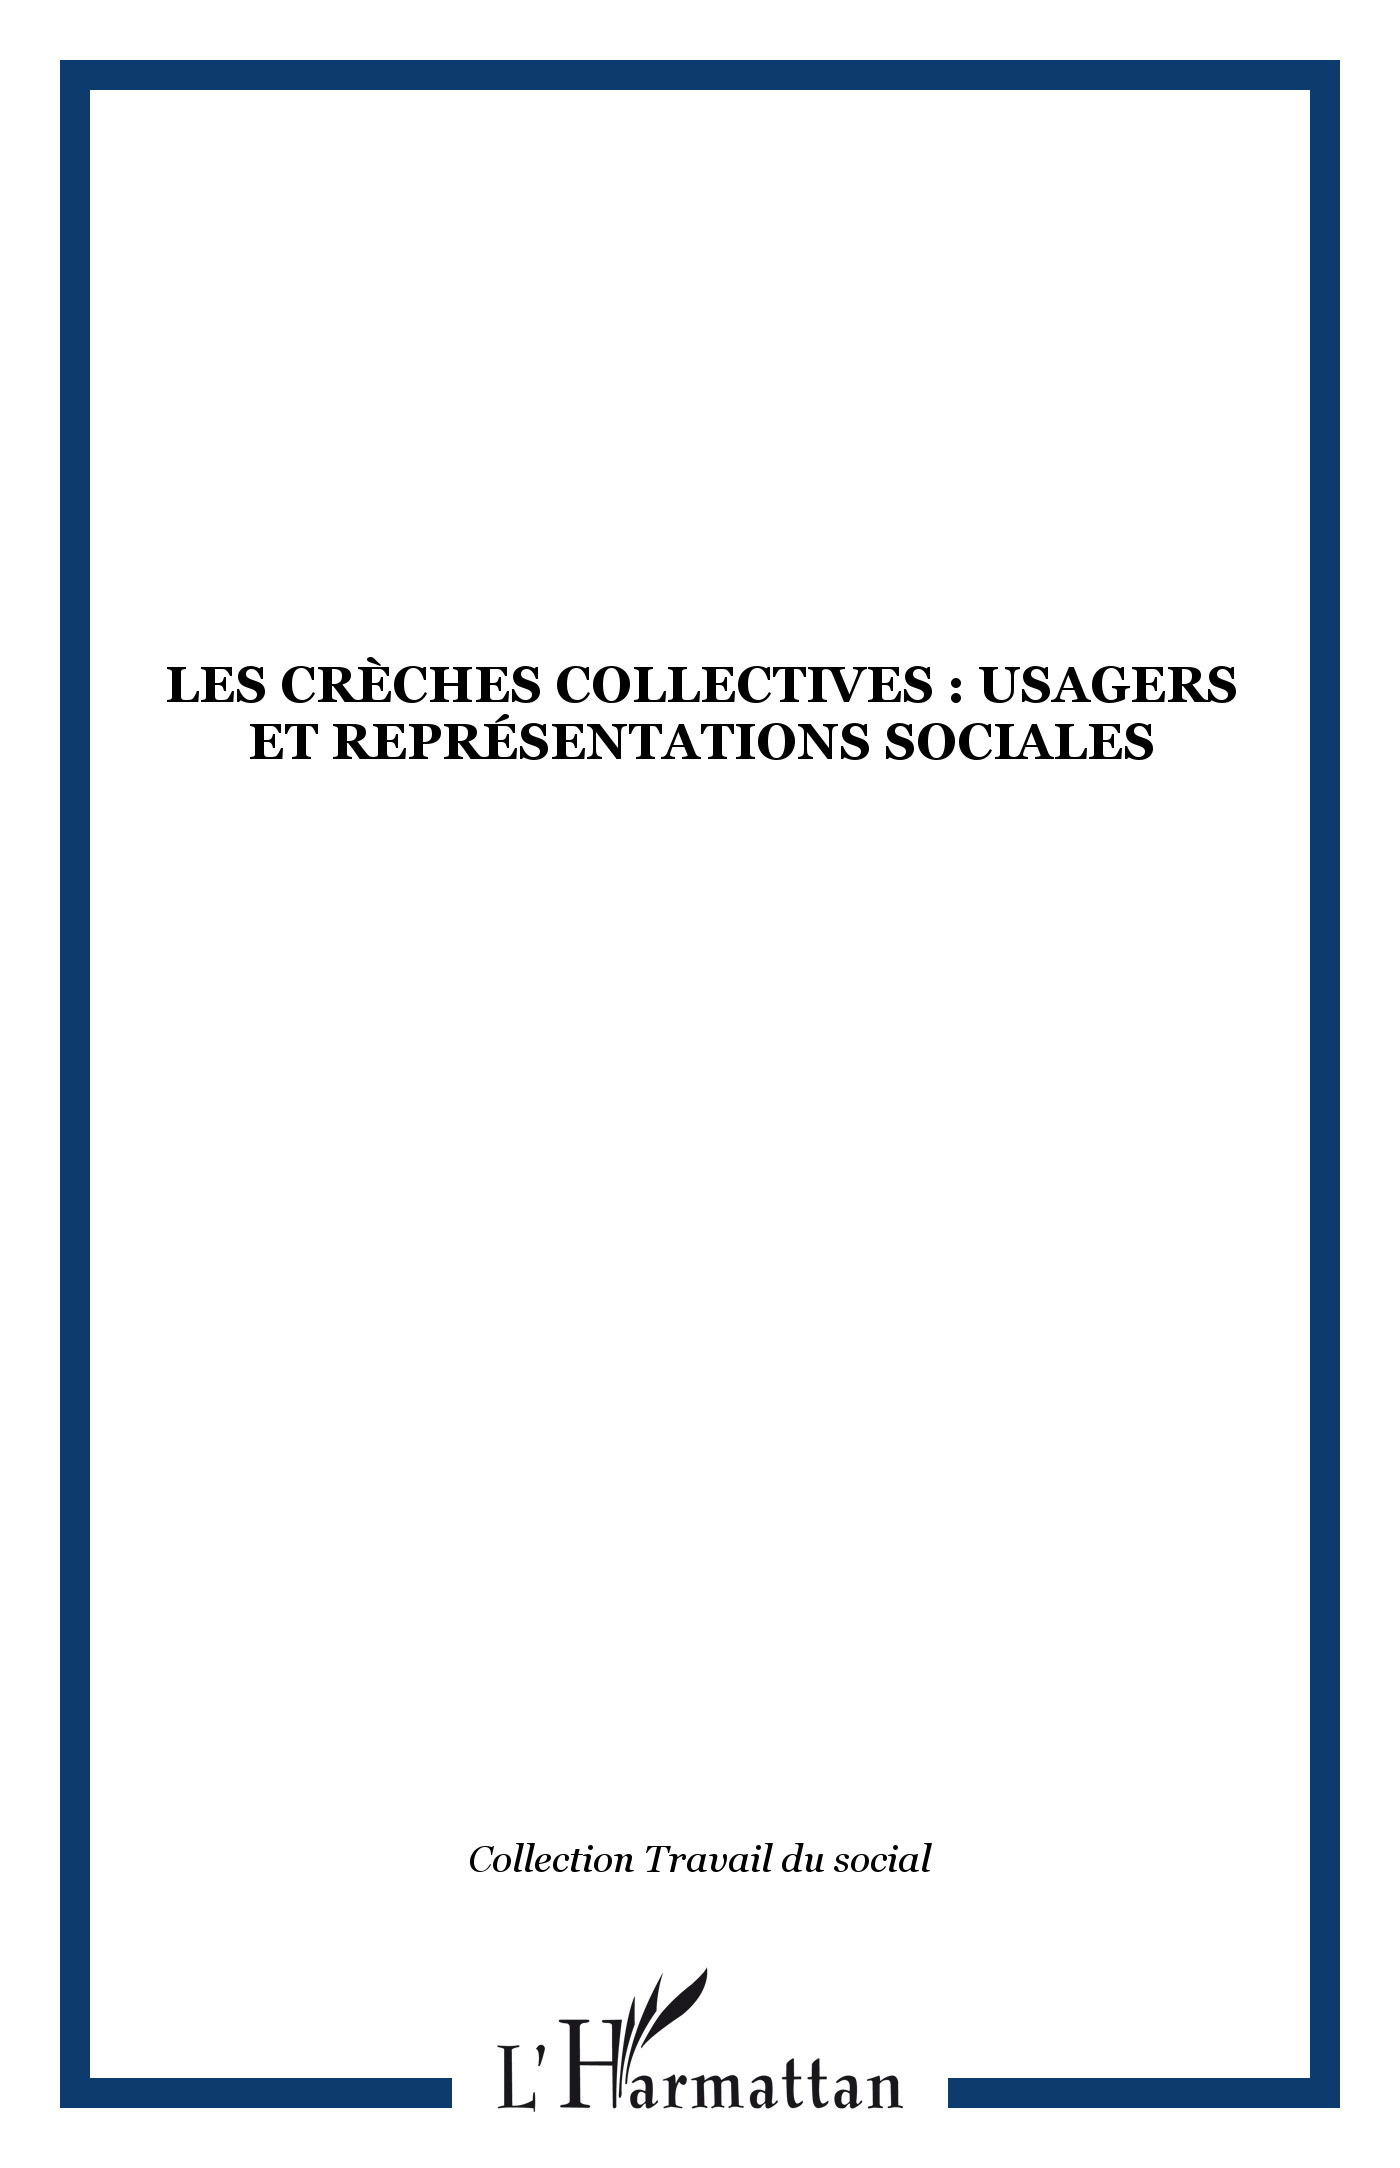 LES CRECHES COLLECTIVES : USAGERS ET REPRESENTATIONS SOCIALES